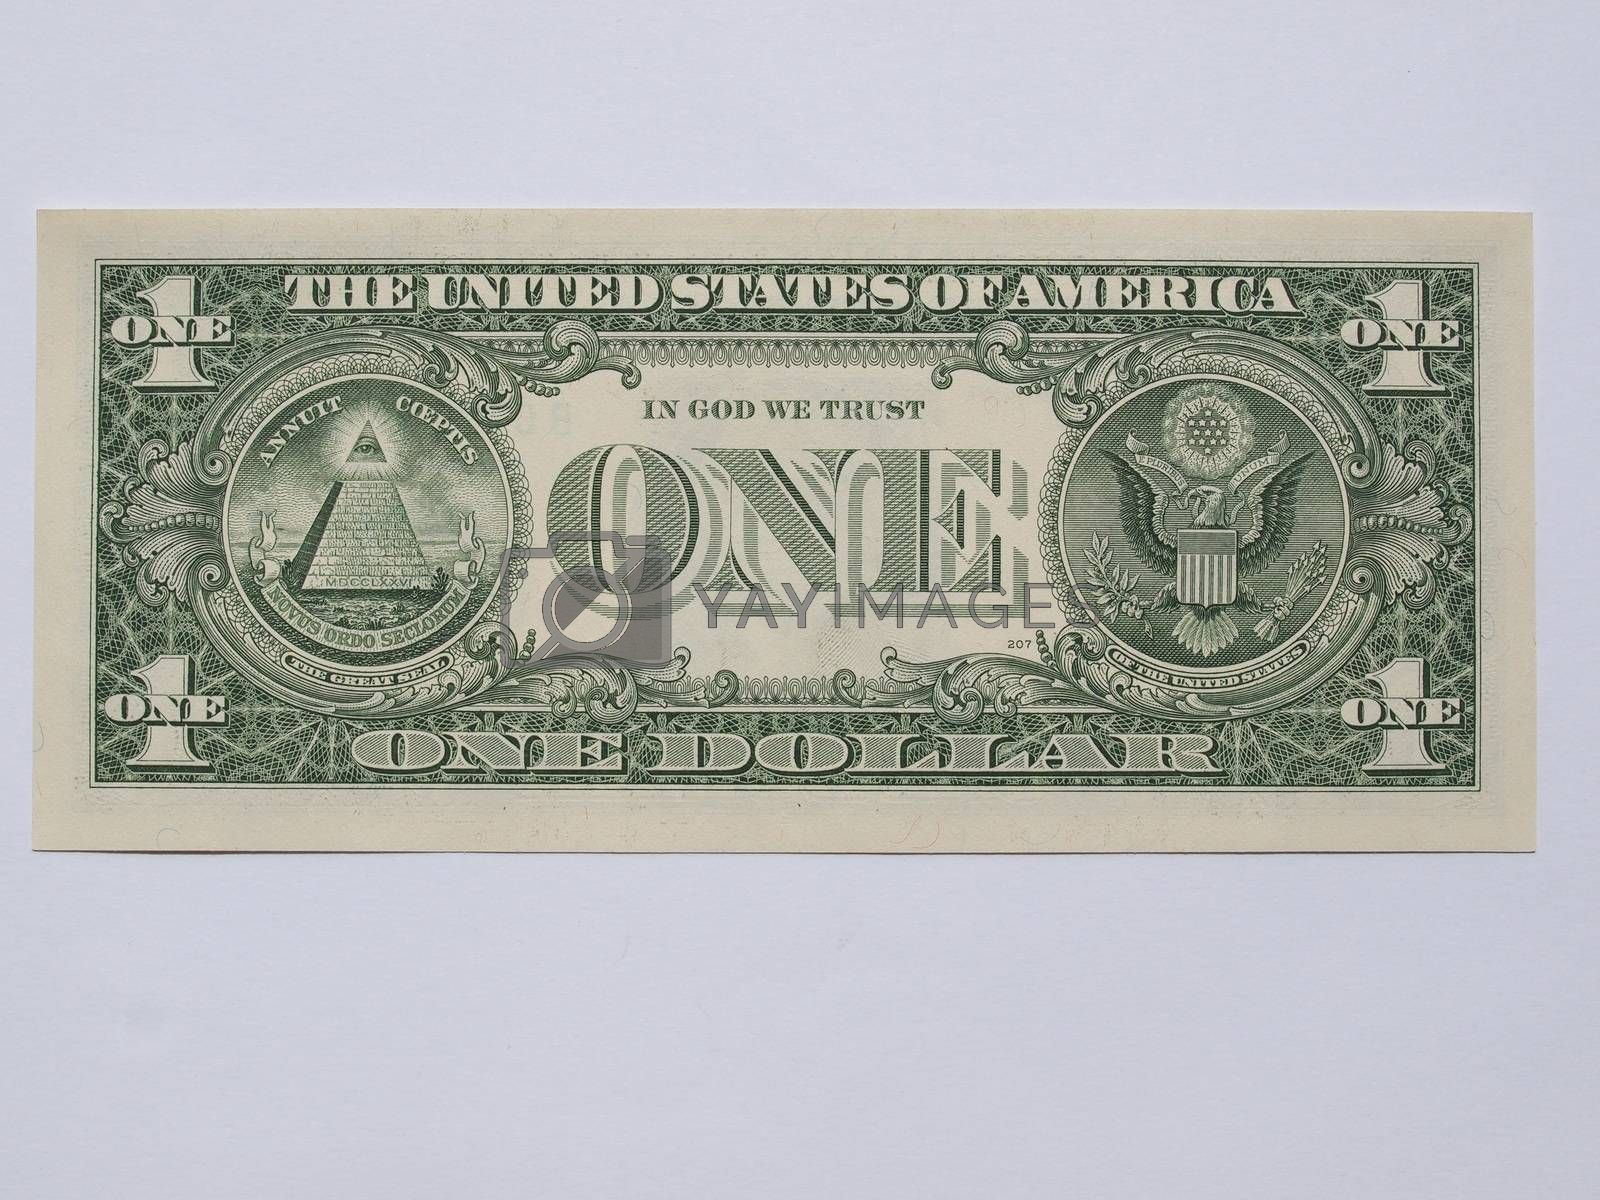 Royalty free image of 1 Dollar note by paolo77